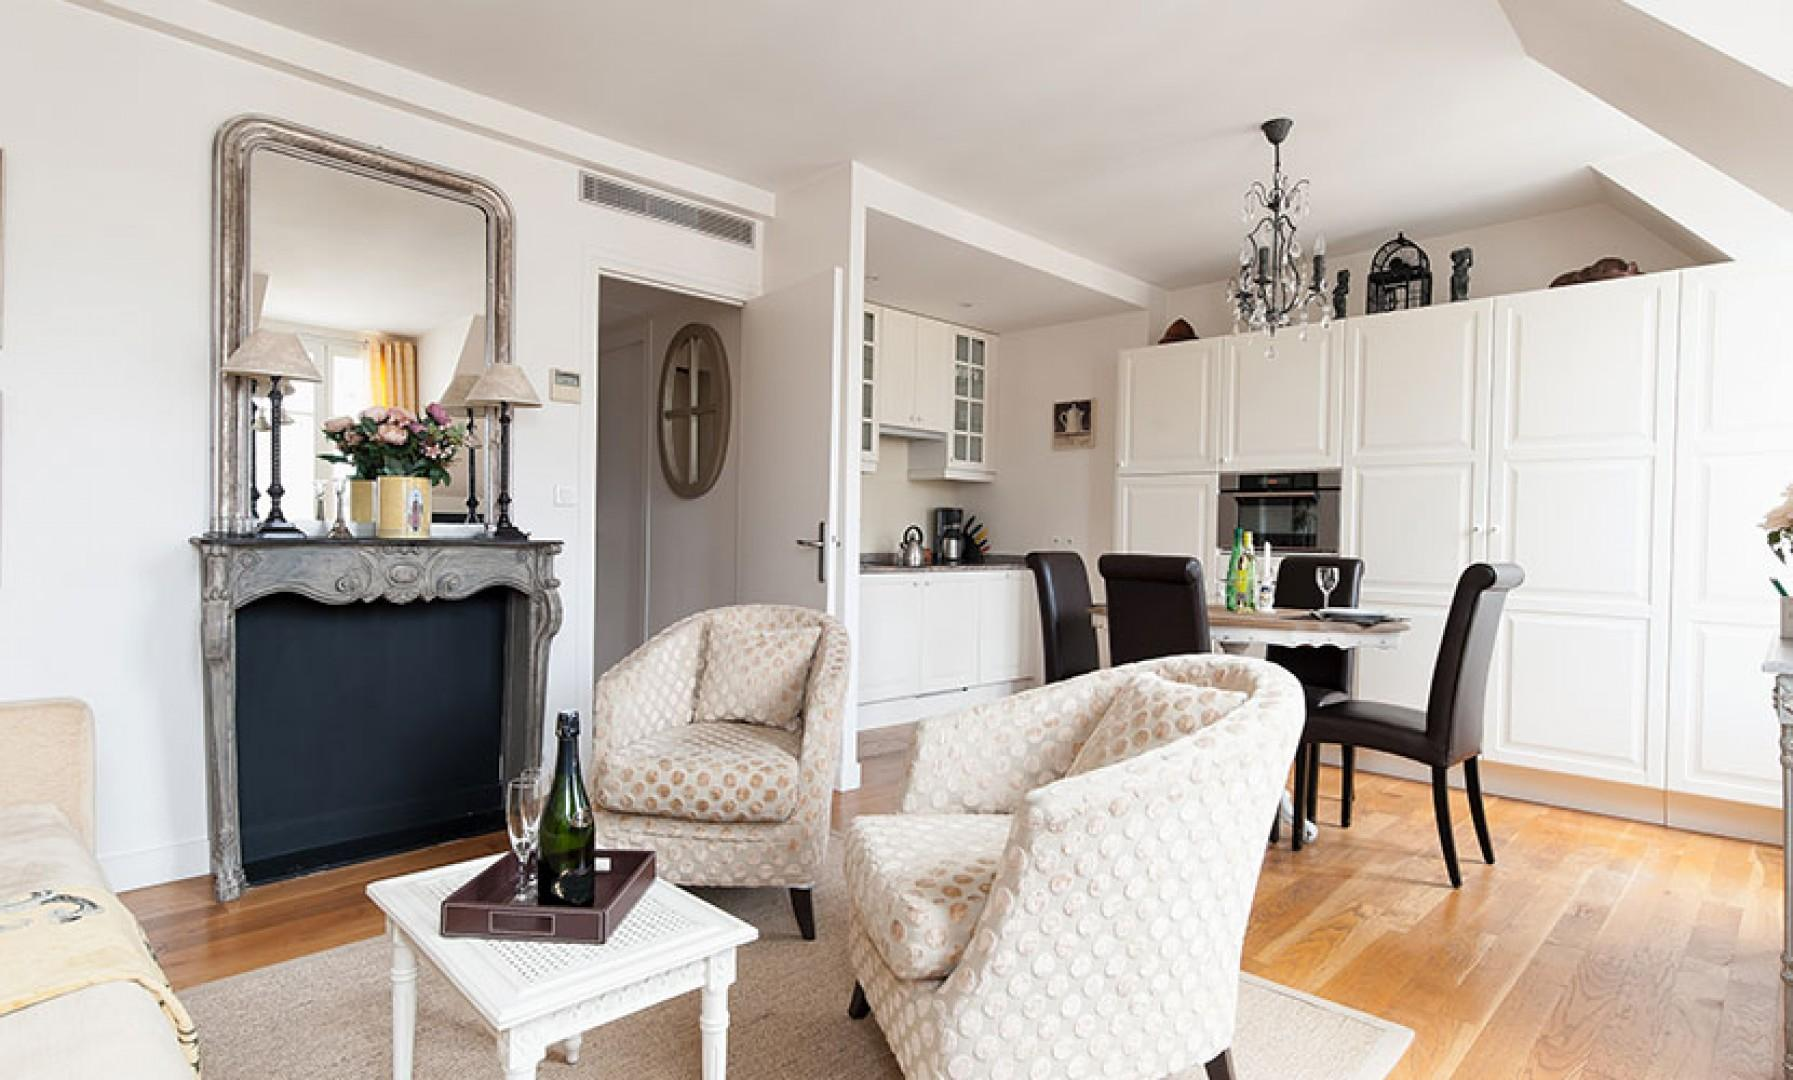 The kitchen, living and dining areas flow seamlessly.